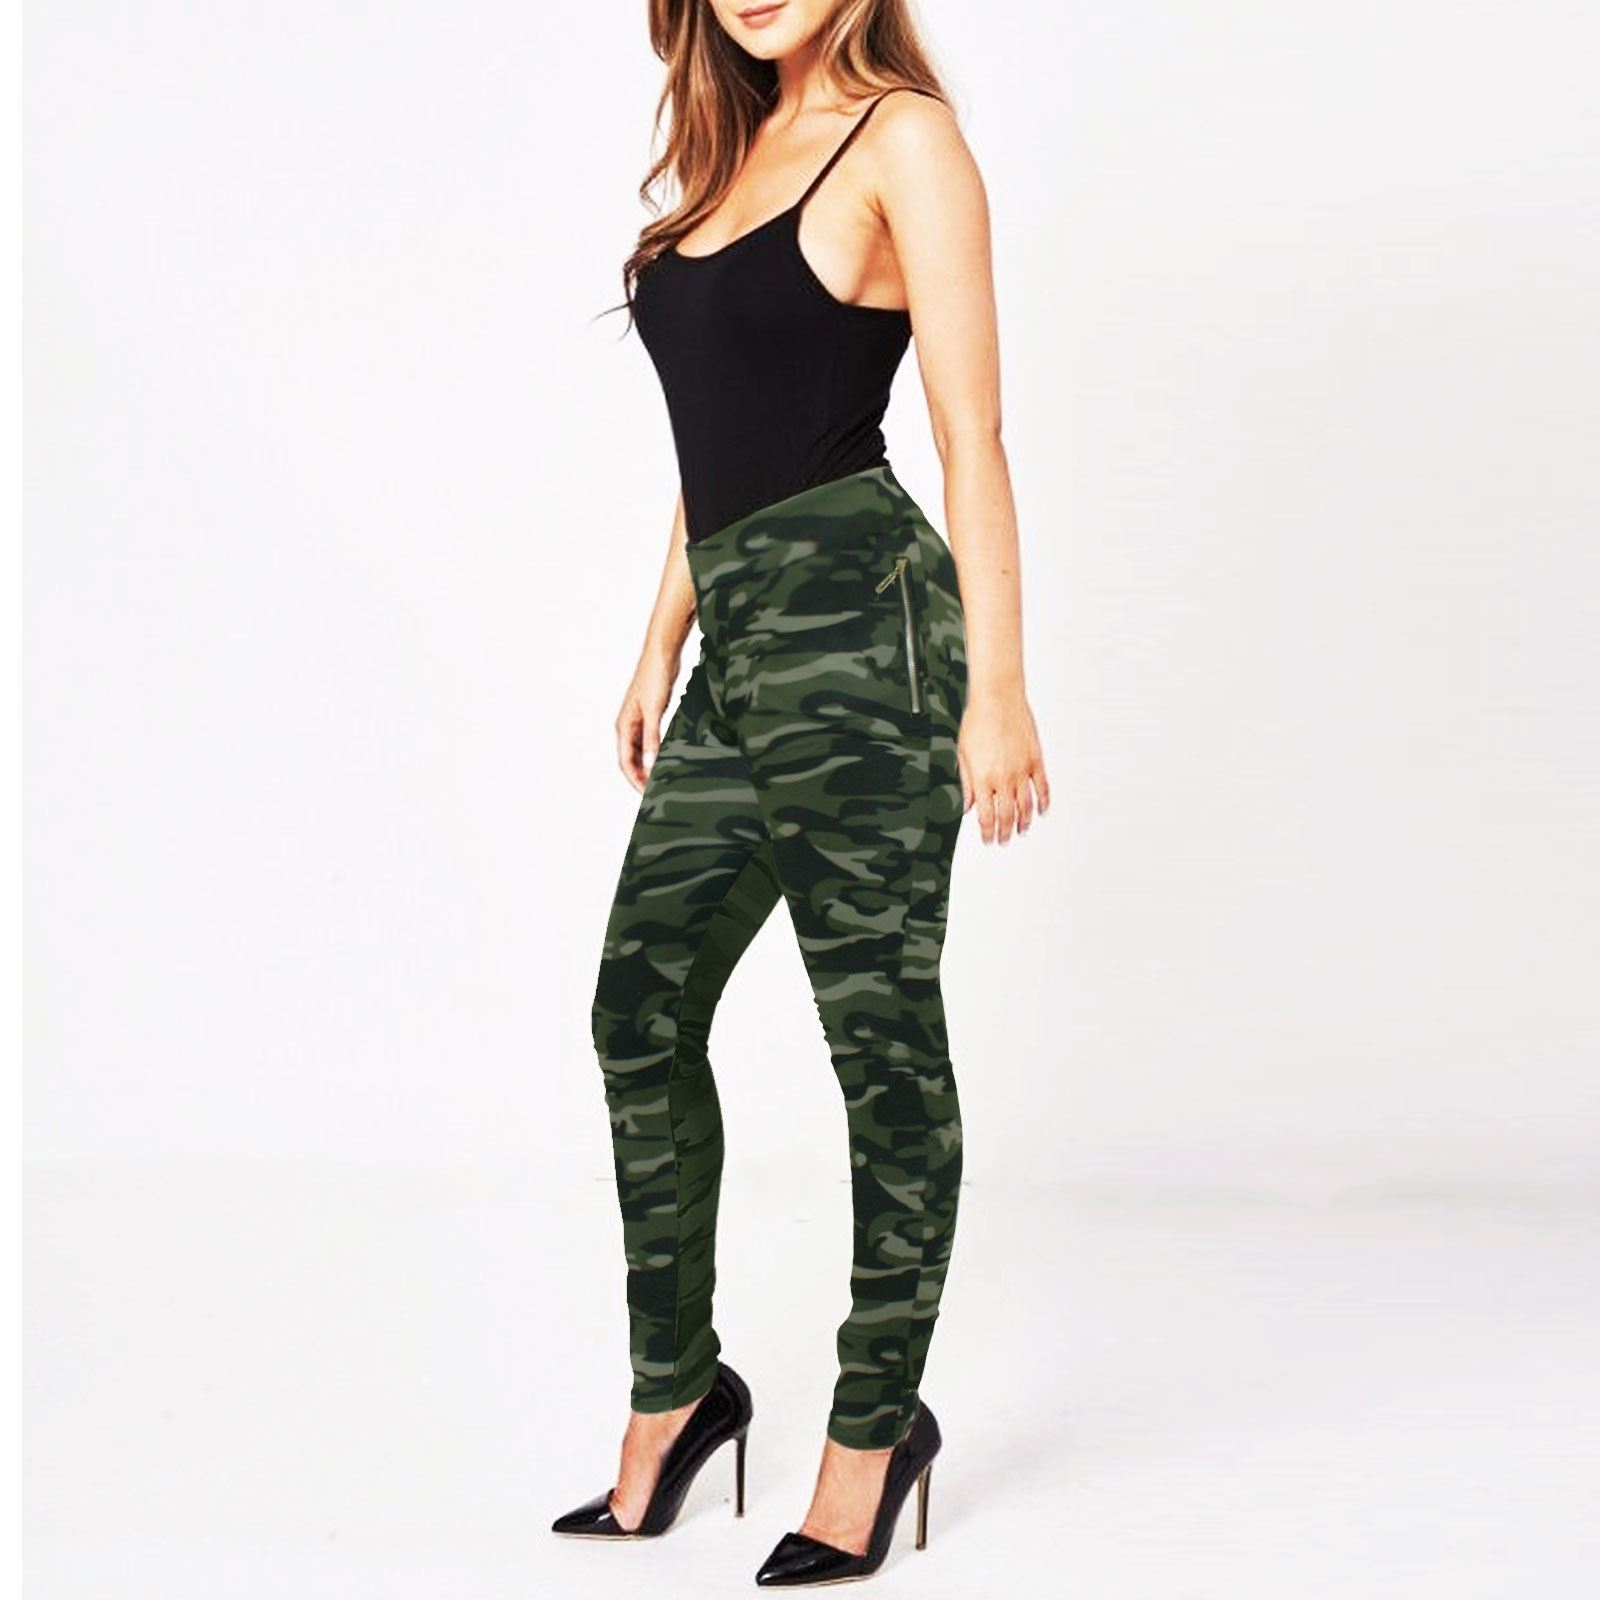 f27a76ae0291c WOMENS CAMOUFLAGE TROUSERS JOGGING BOTTOMS GIRLS LADIES TRACKSUIT ...